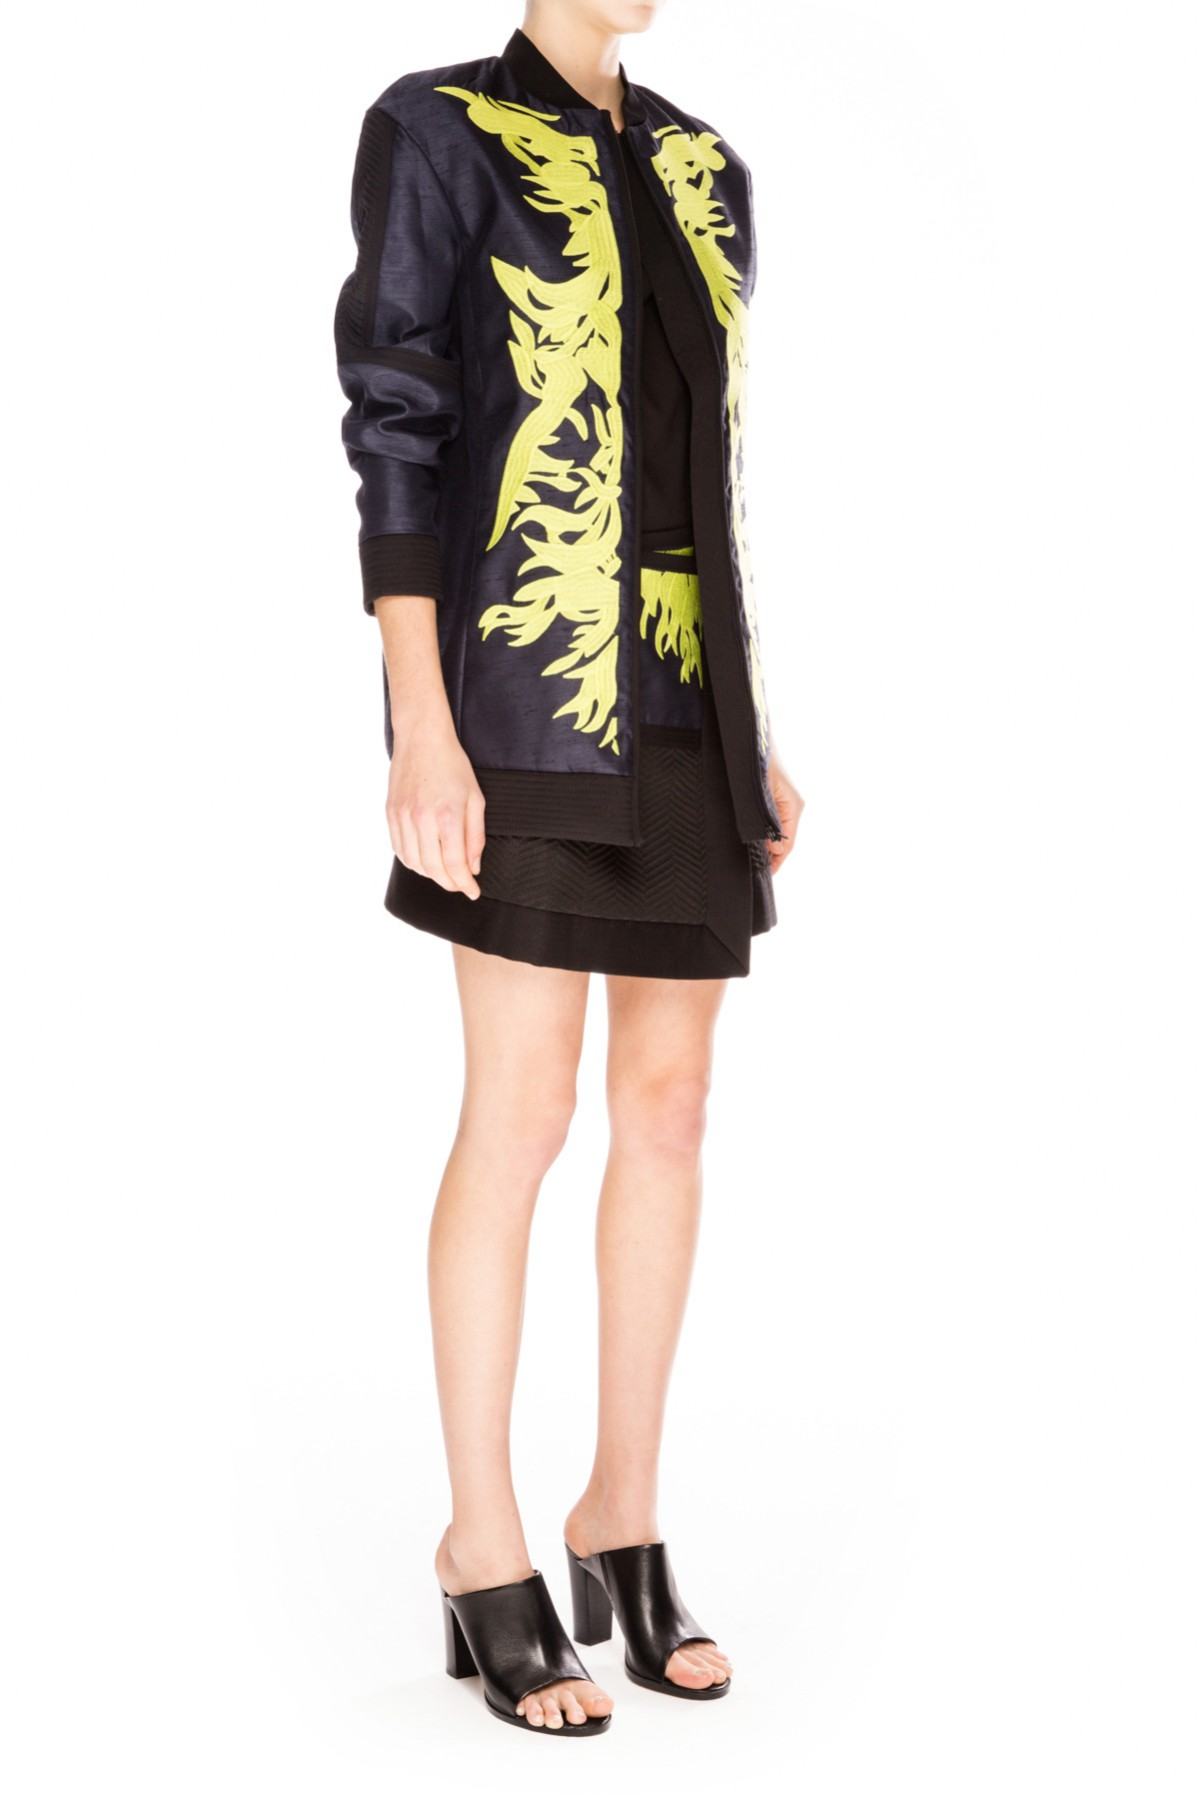 Cameo WORLDS AWAY BOMBER NAVY/CHARTREUSE - BNKR